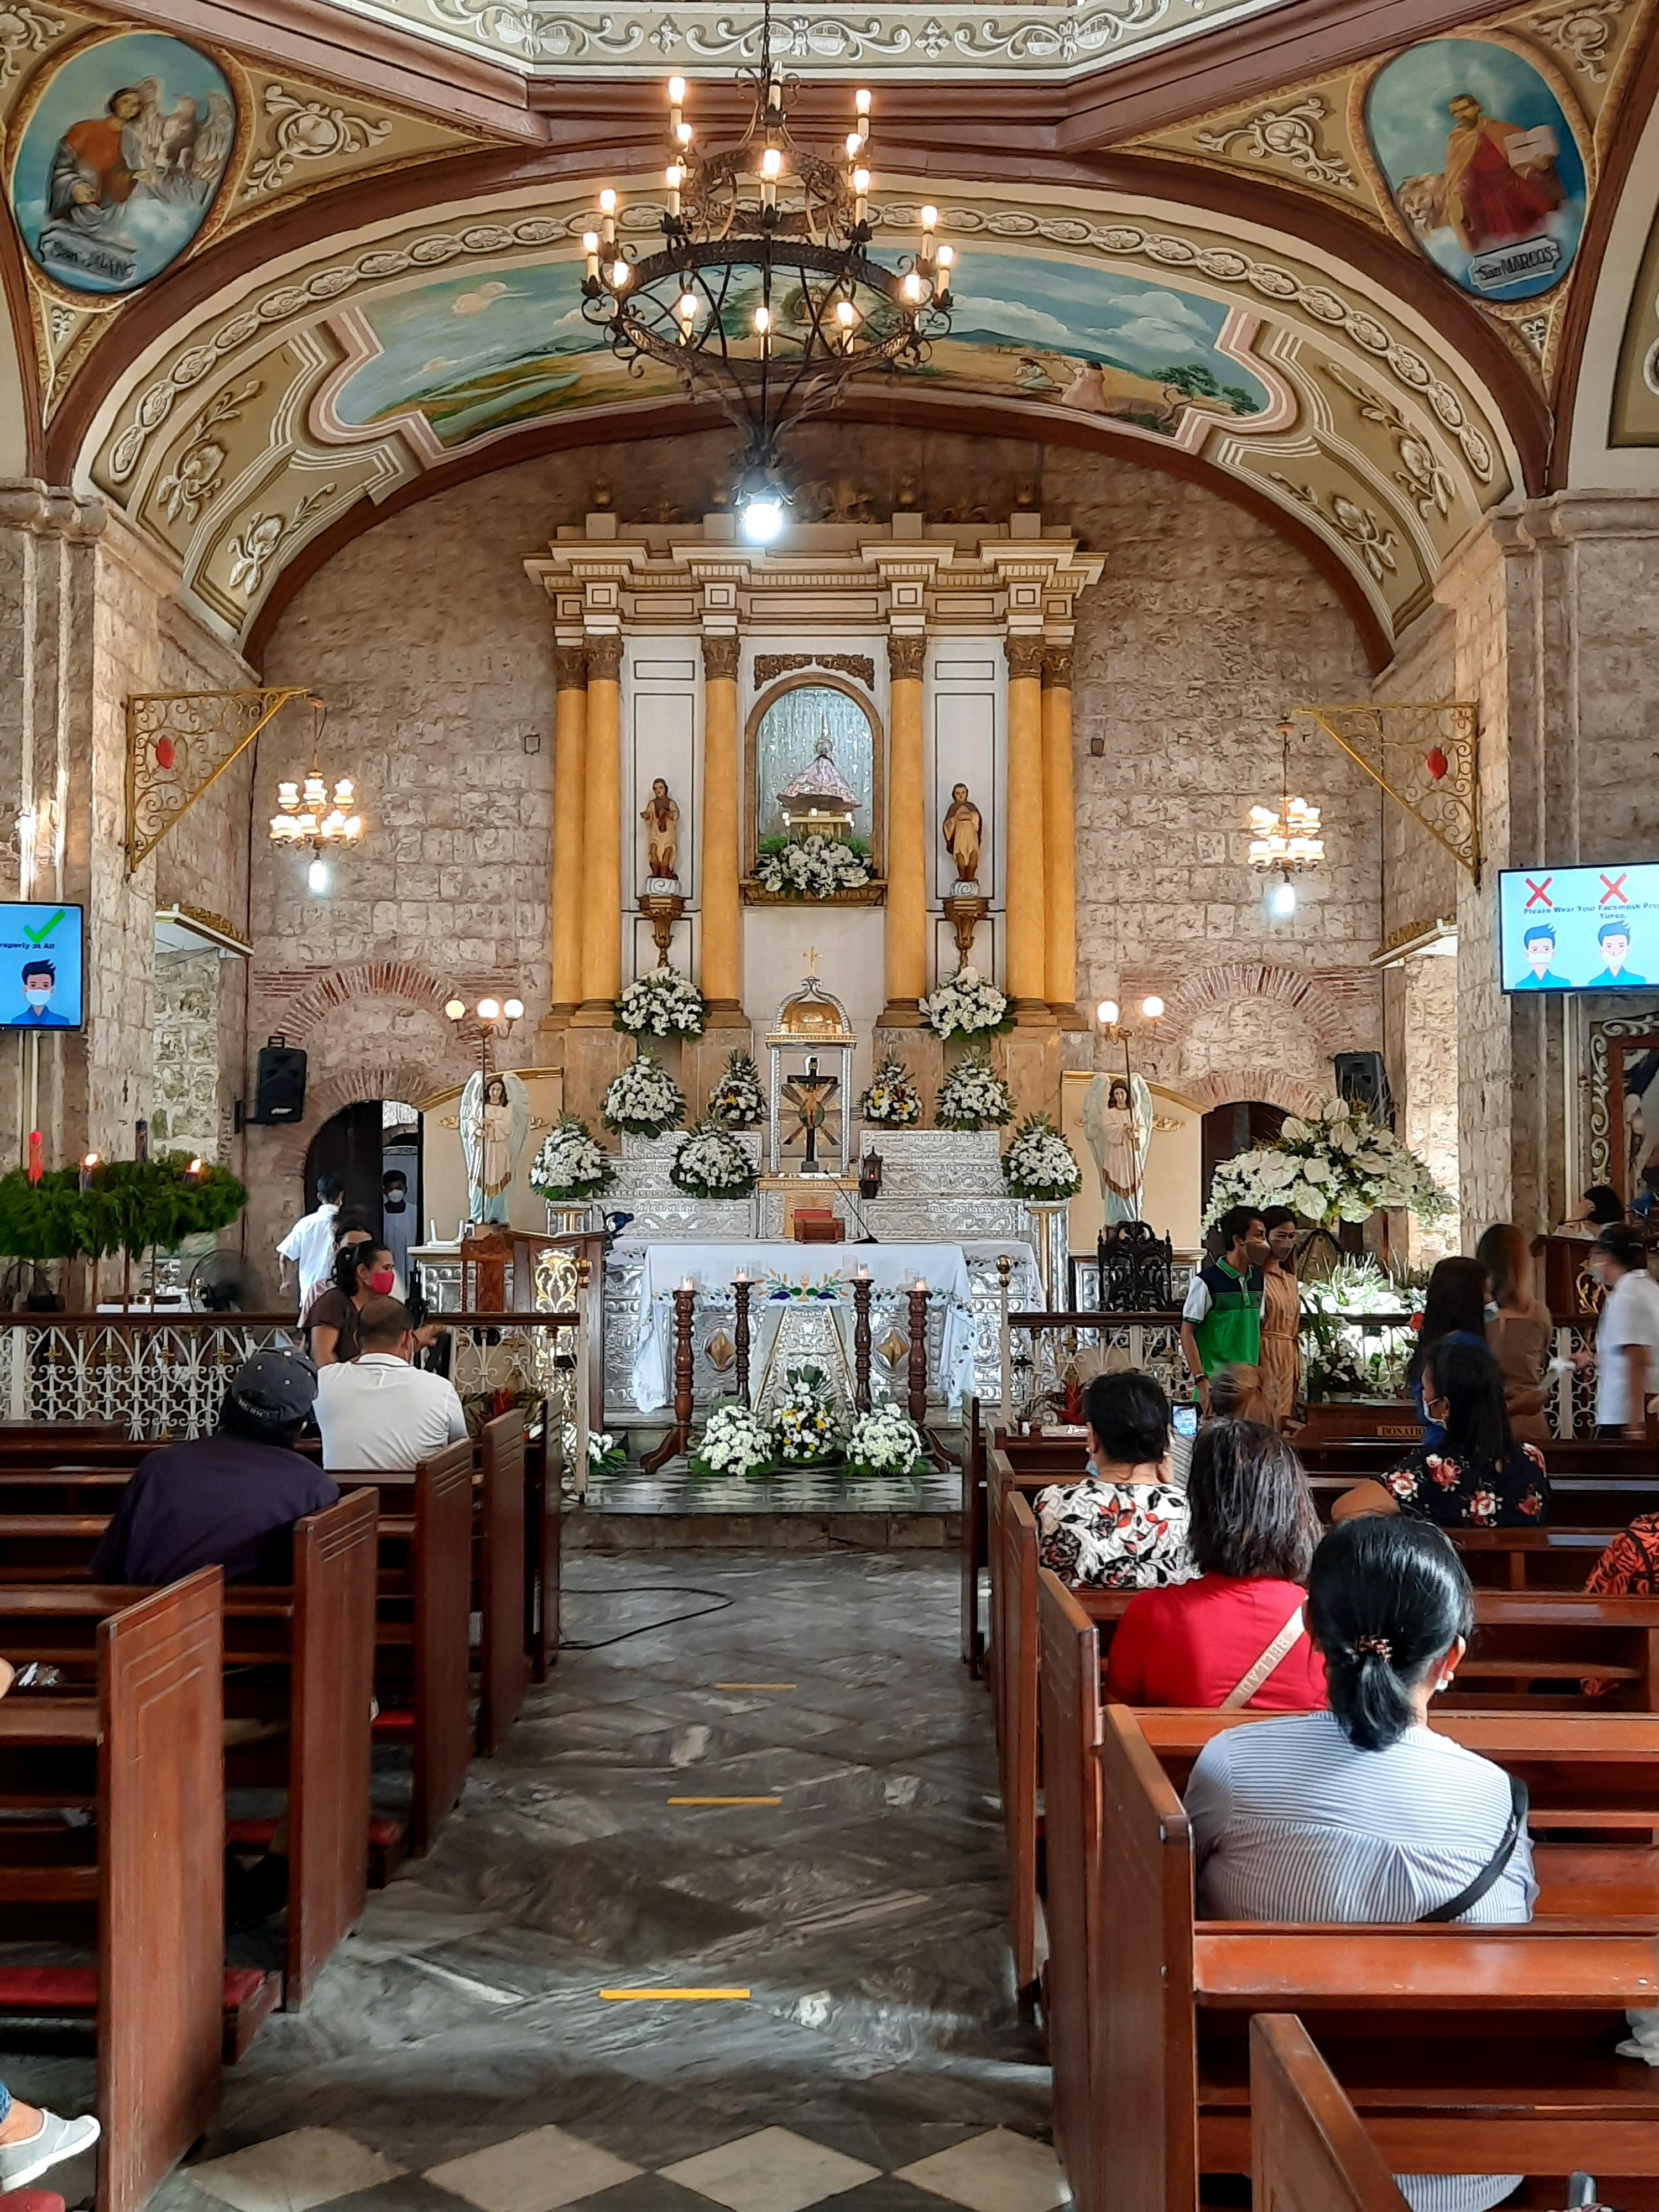 Interior of the Archdiocesan Shrine of Our Lady of Caysasay in Labac, Taal, Batangas, Philippines